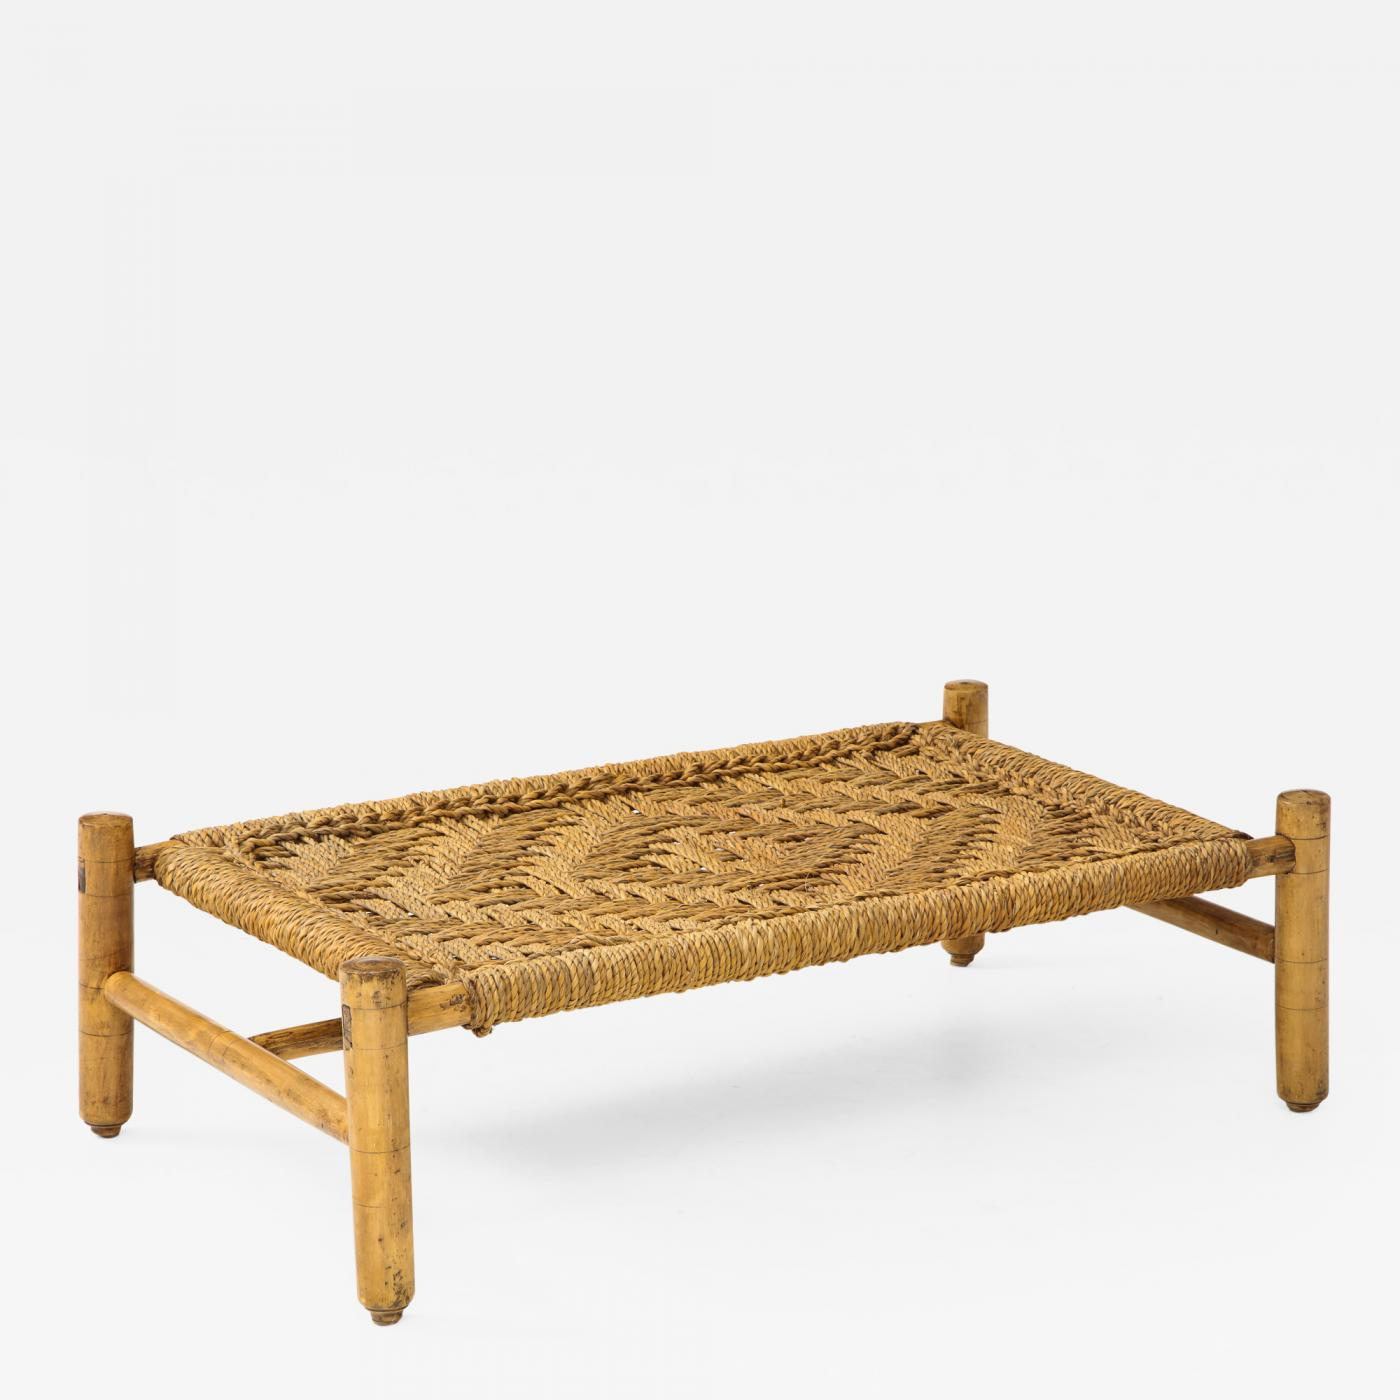 - Audoux & Minet Woven Rope And Wood Coffee Table Or Bench